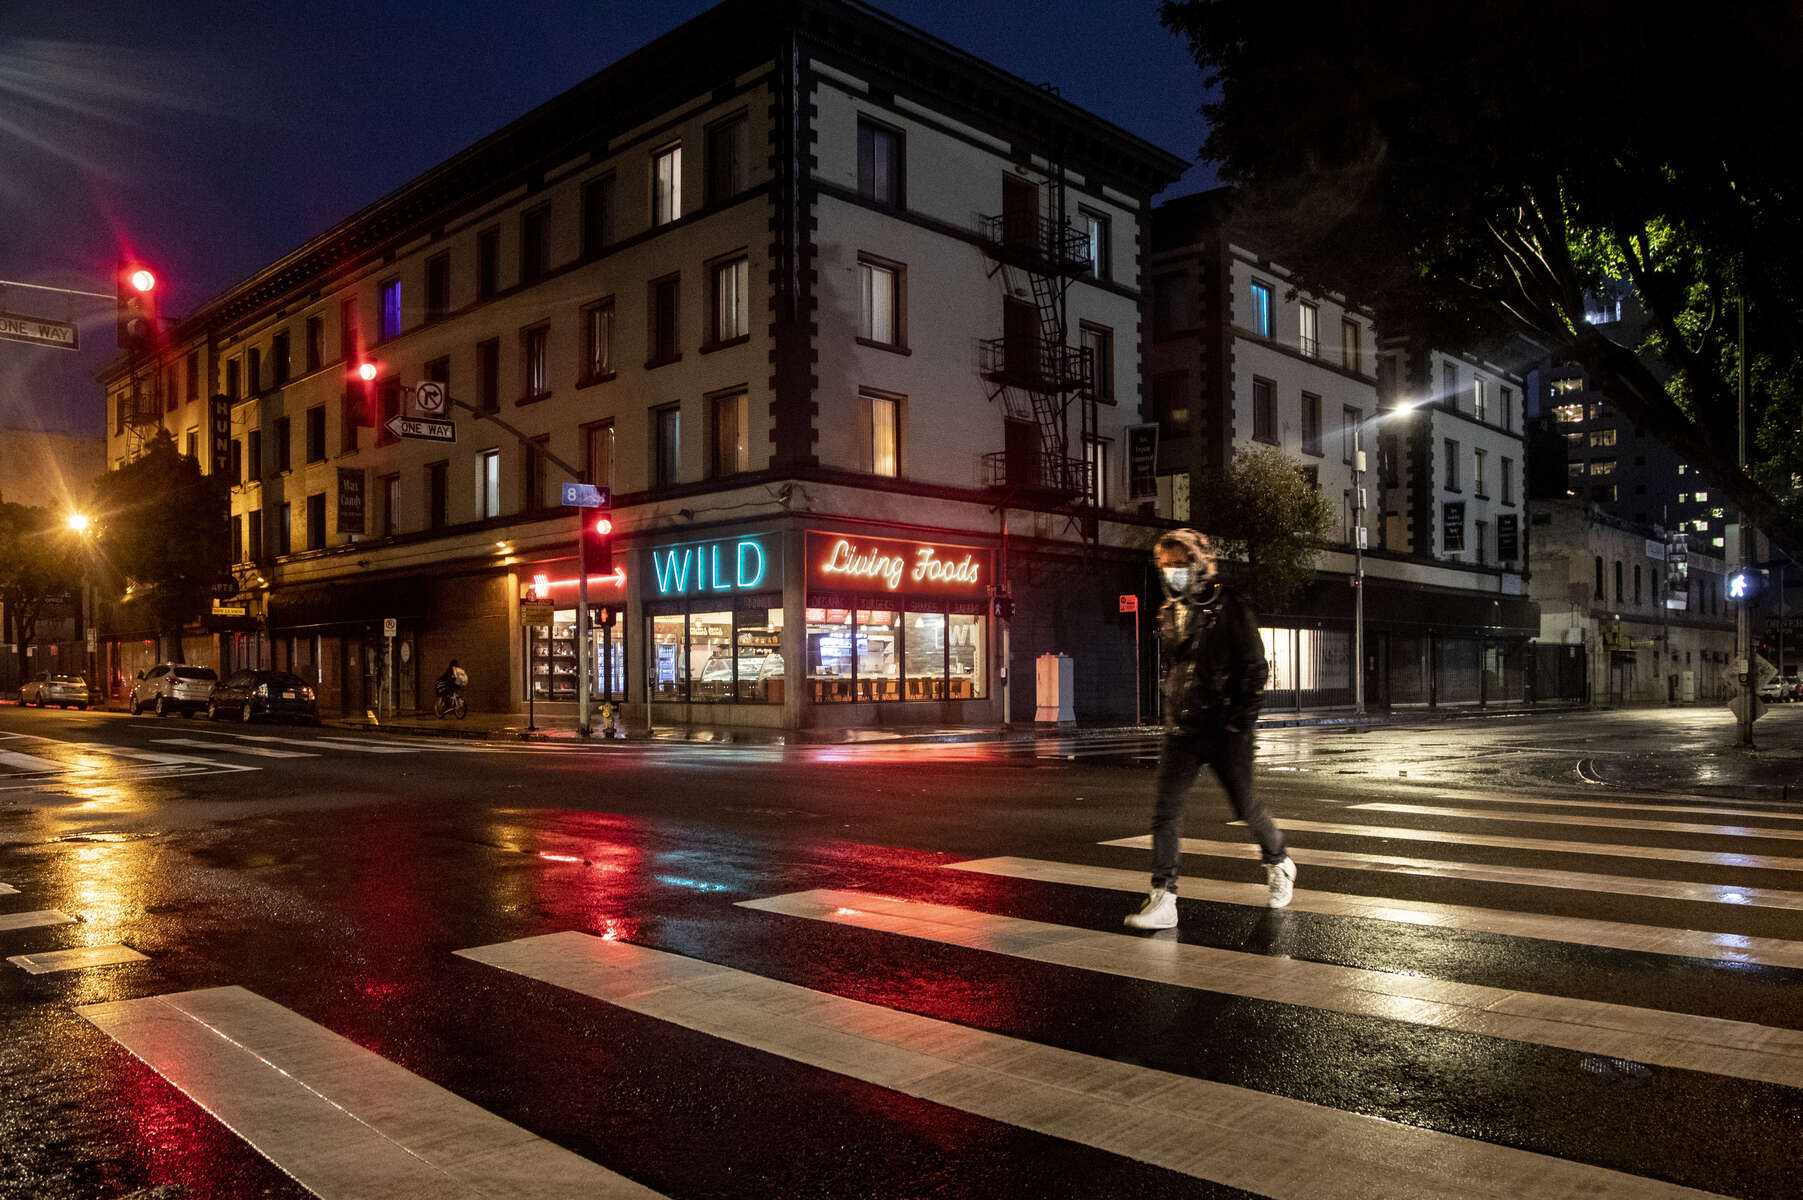 A masked man walks in front of the restaurant Wild Living Foods opened for take out and deliveries in downtown Los Angeles on April 9, 2020.  Governor Gavin Newsom issues a {quote}stay at Home{quote} order on March 19, to slow the spread of Covid-19, closing all the non-essential businesses.